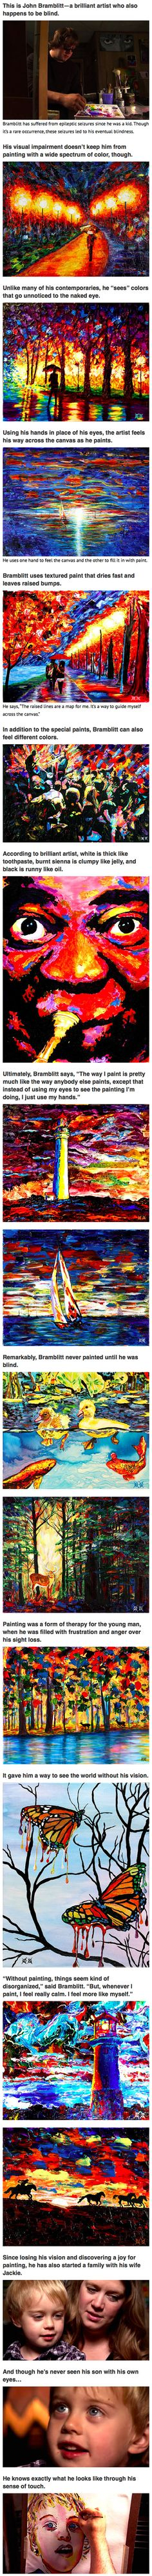 Blind artist uses his sense of touch to create beautifully colorful paintings.